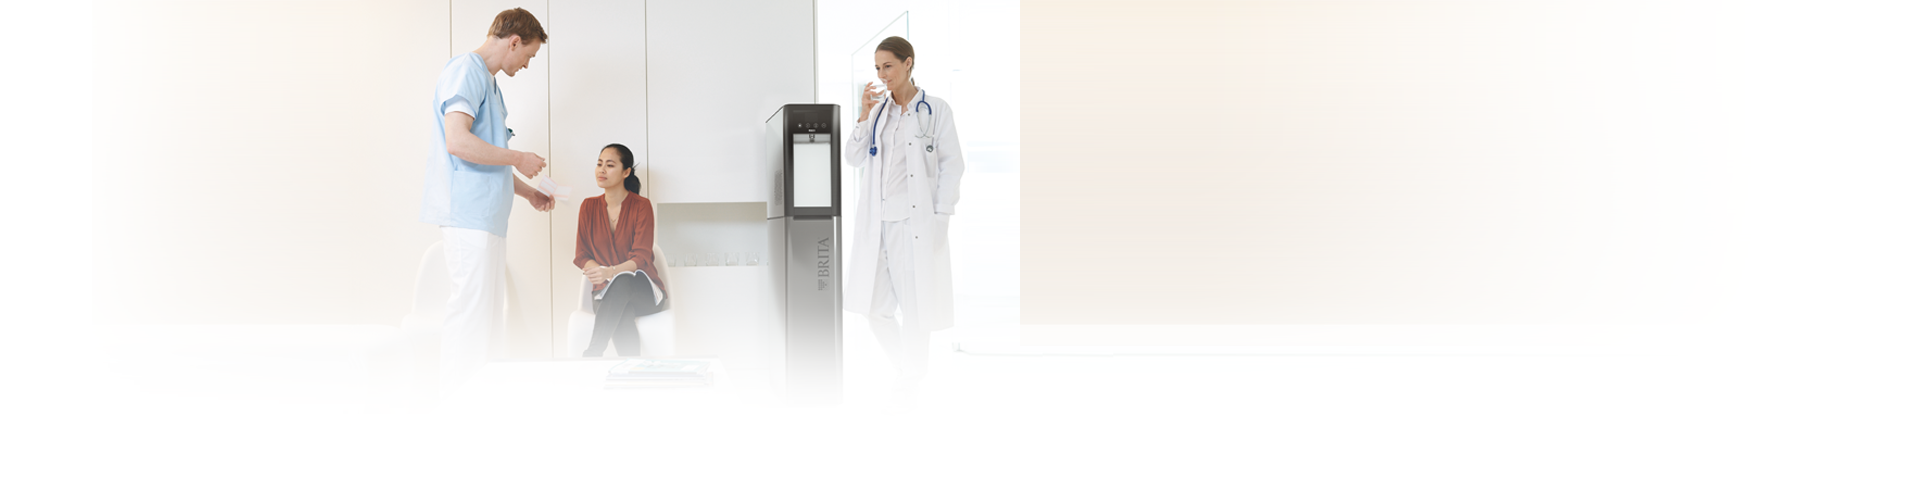 Water dispenser in the hospital